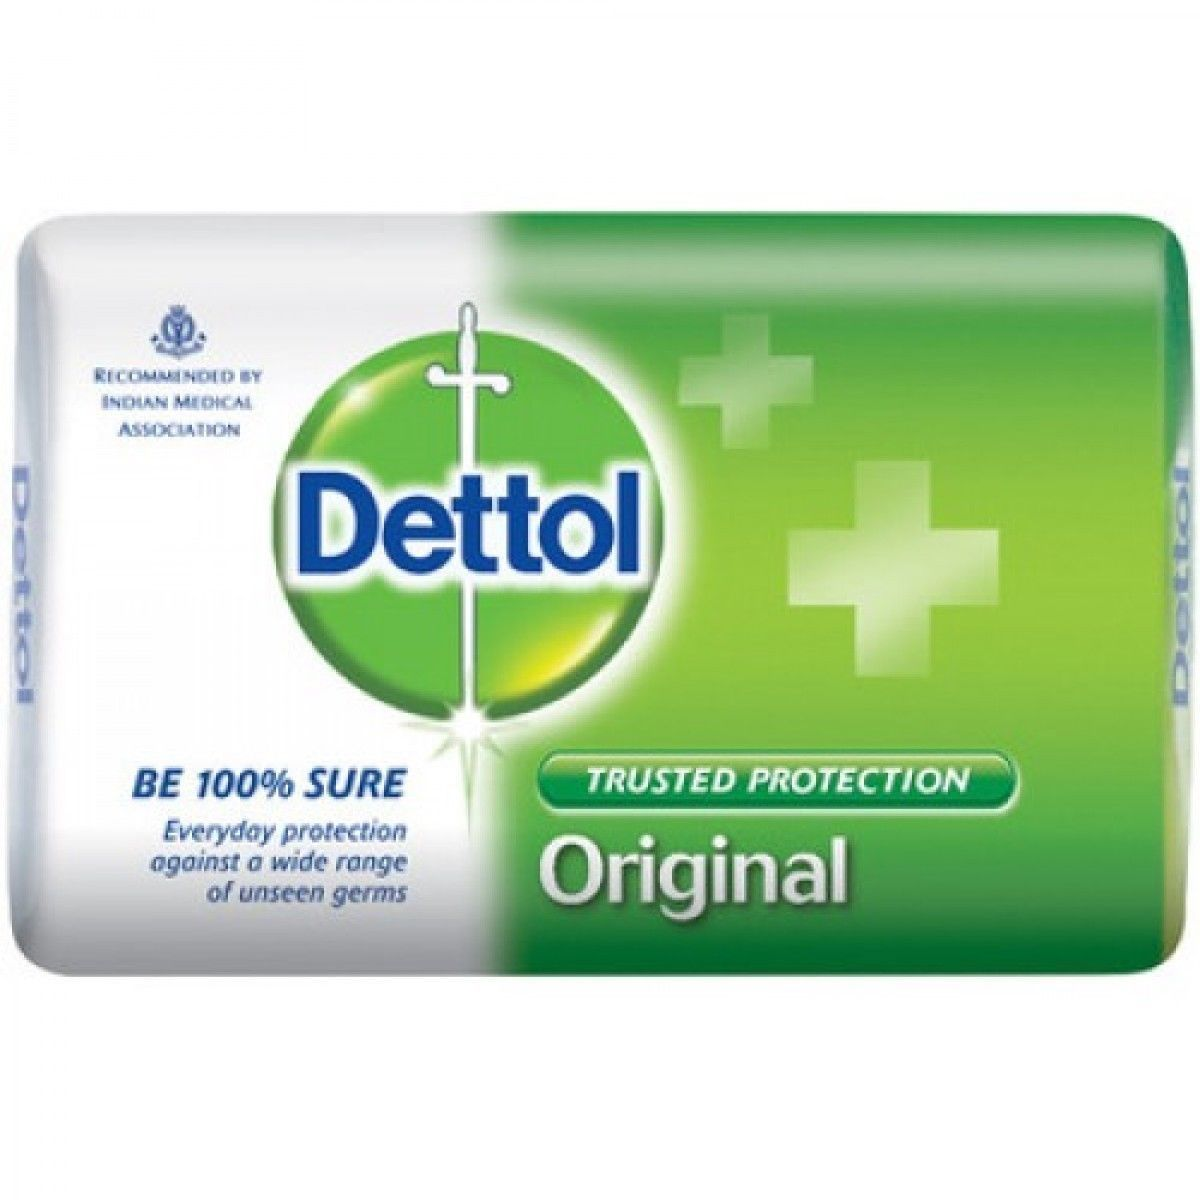 Dettol Orignal Soap Trusted Protection for Family Original 75gm ( pack of 3 )** image 2